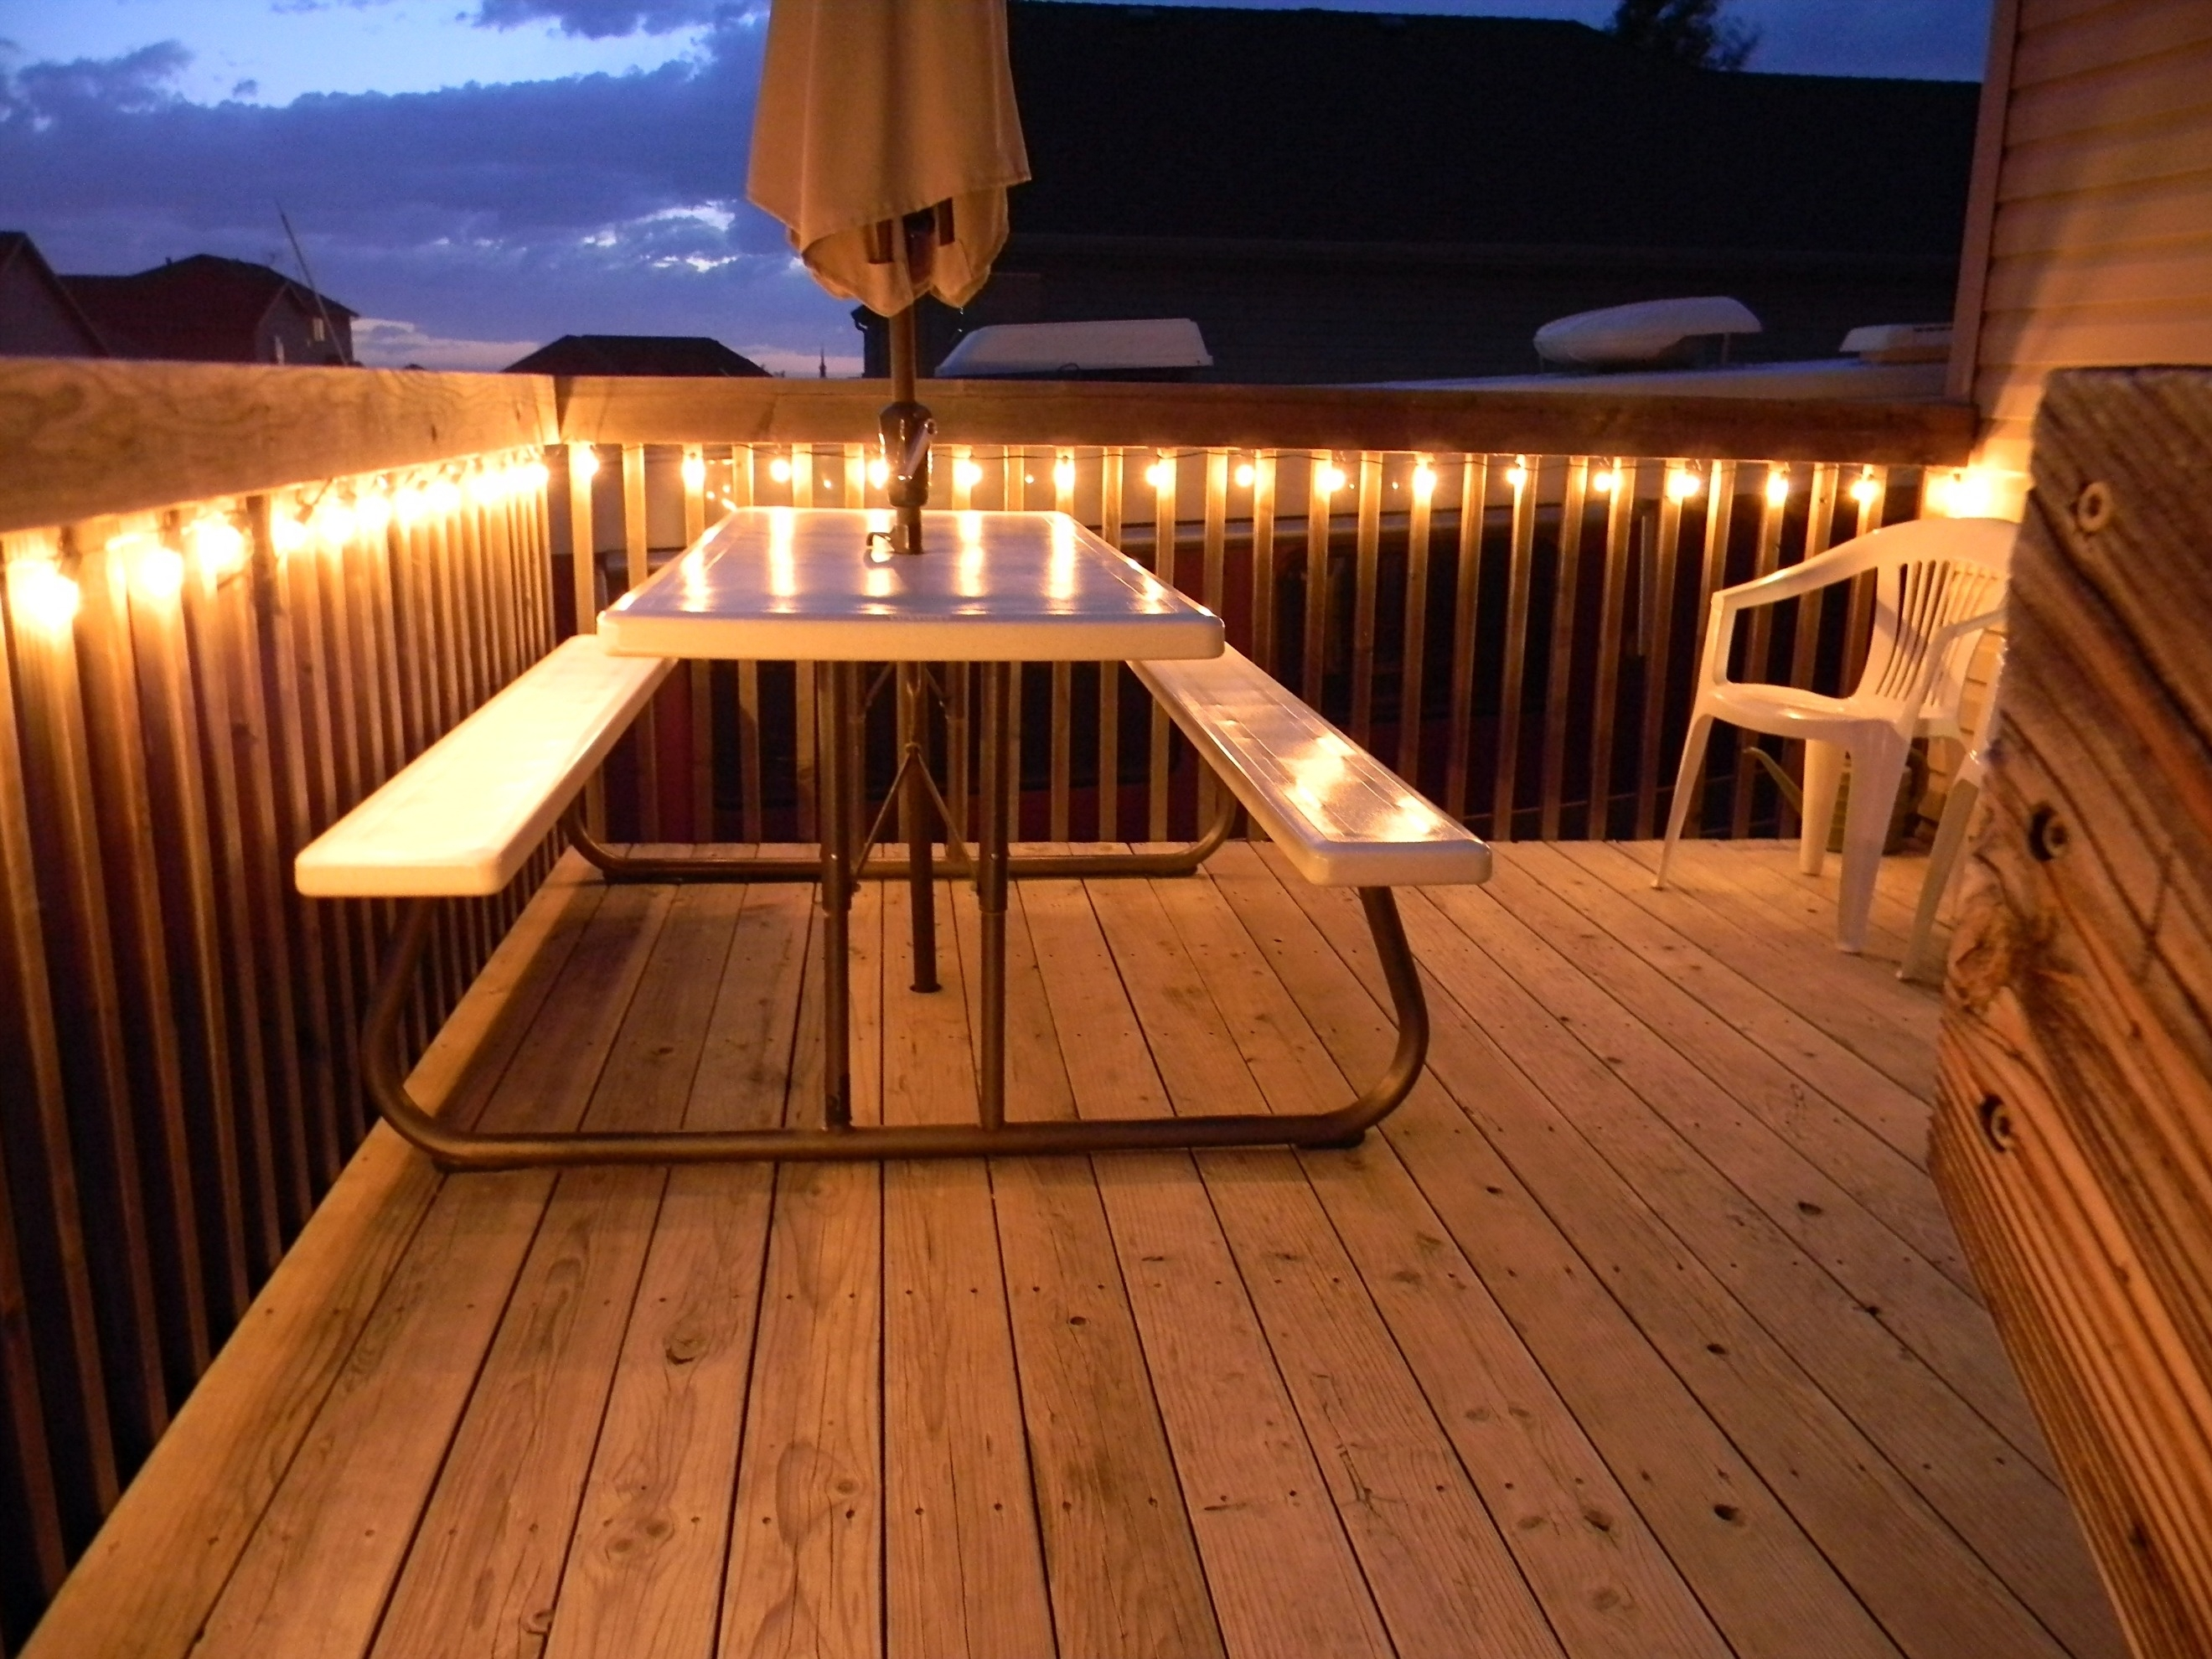 Cheap Outdoor Teak Furniture Design For Wooden Decks With Unique pertaining to Outdoor Lanterns for Deck (Image 4 of 20)